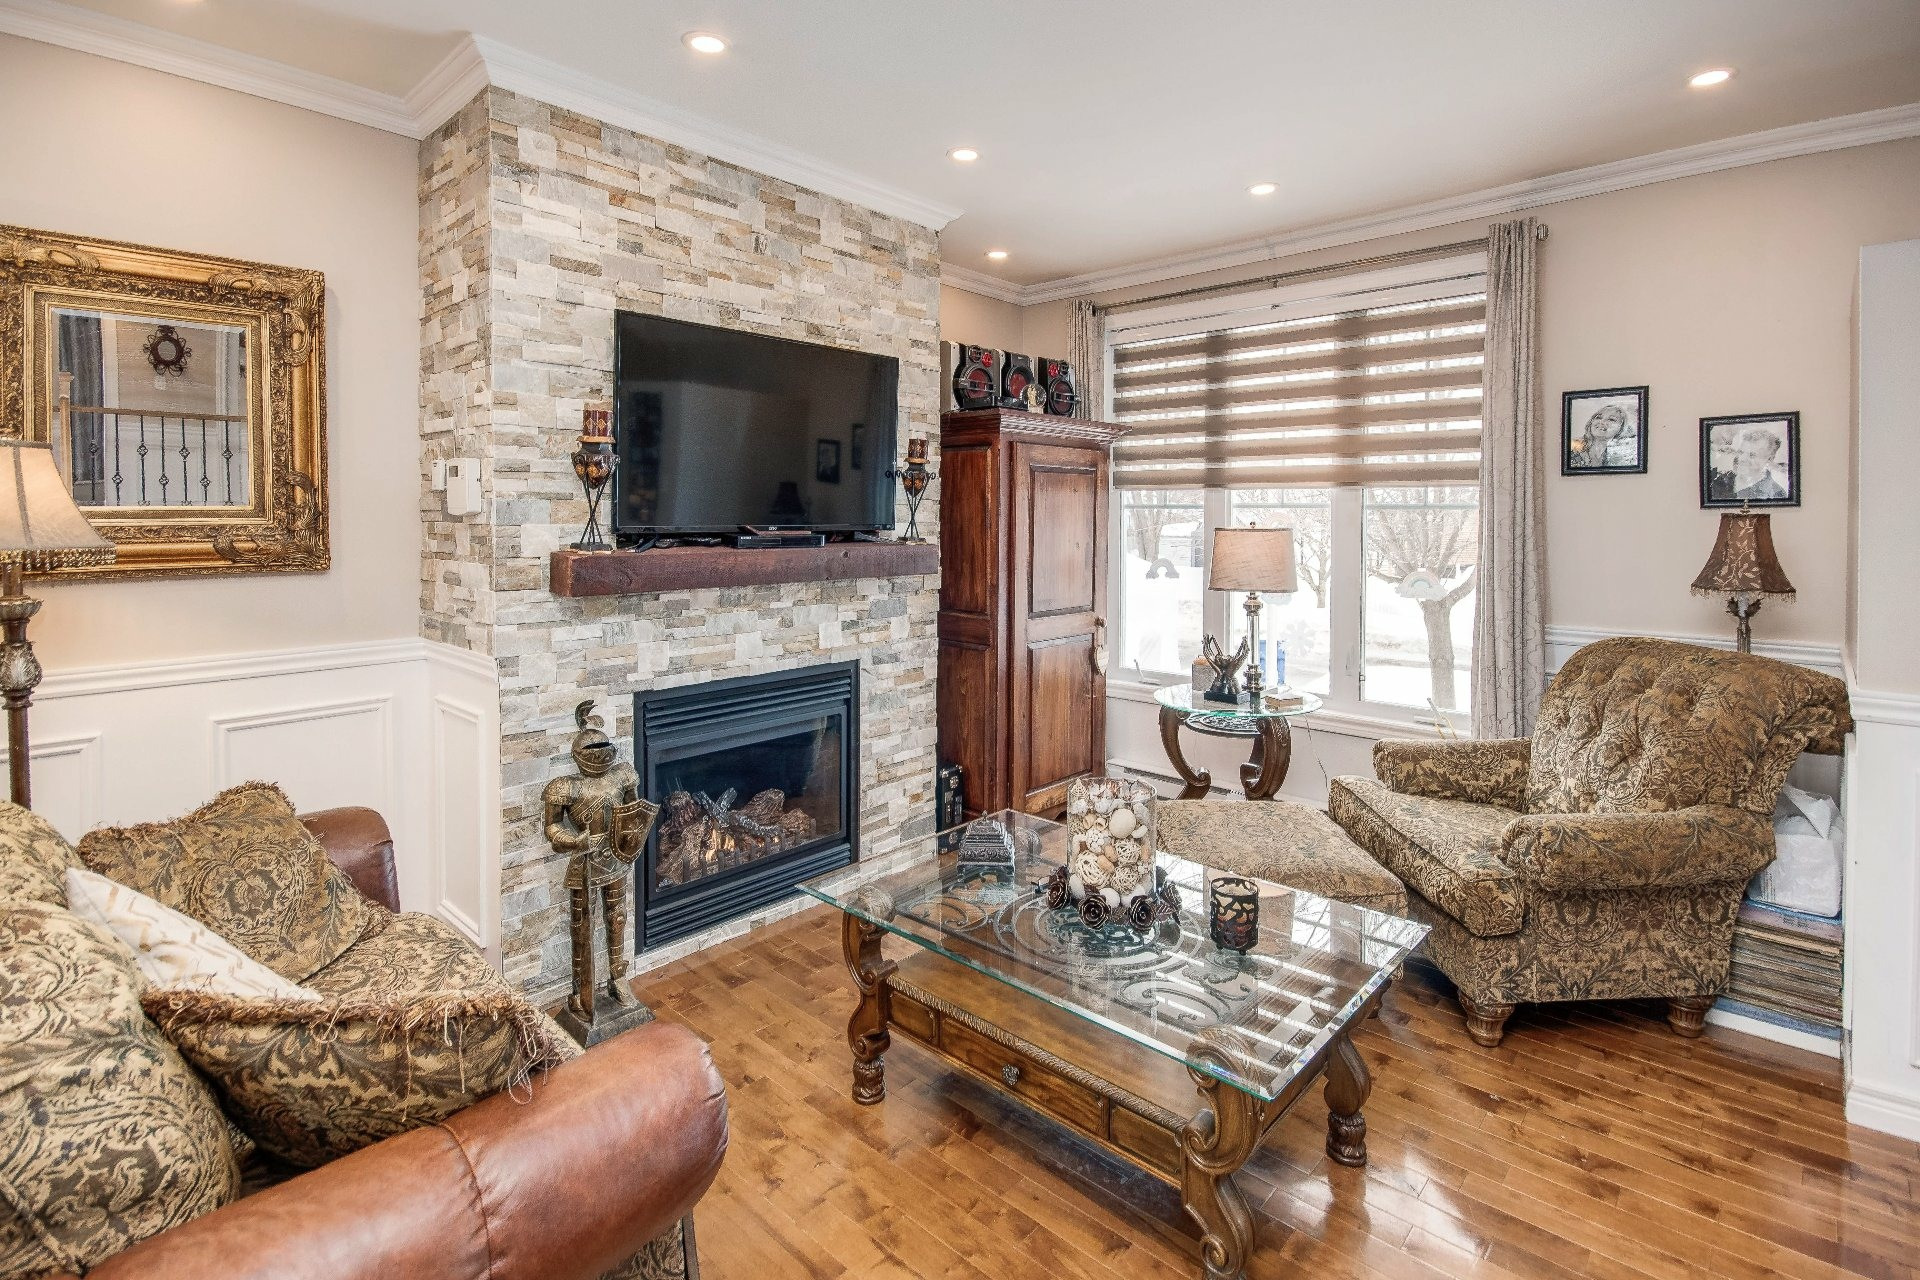 image 5 - House For sale Châteauguay - 11 rooms